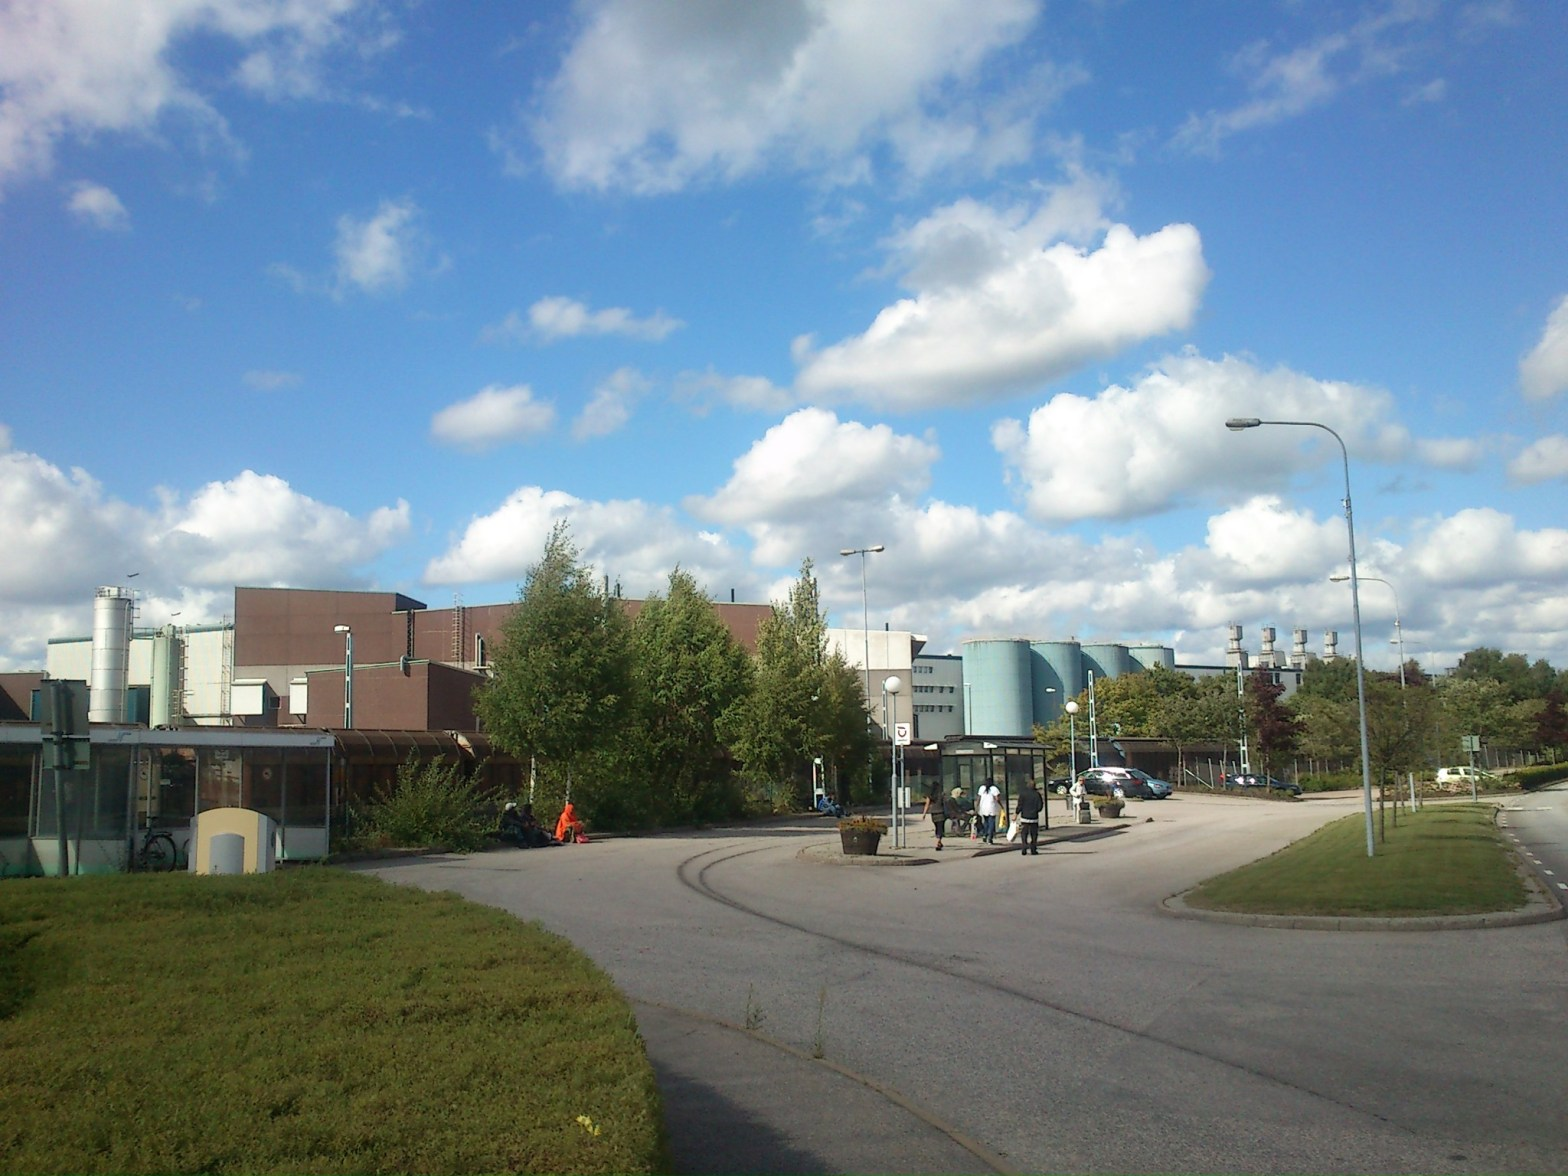 Hyltebruk station